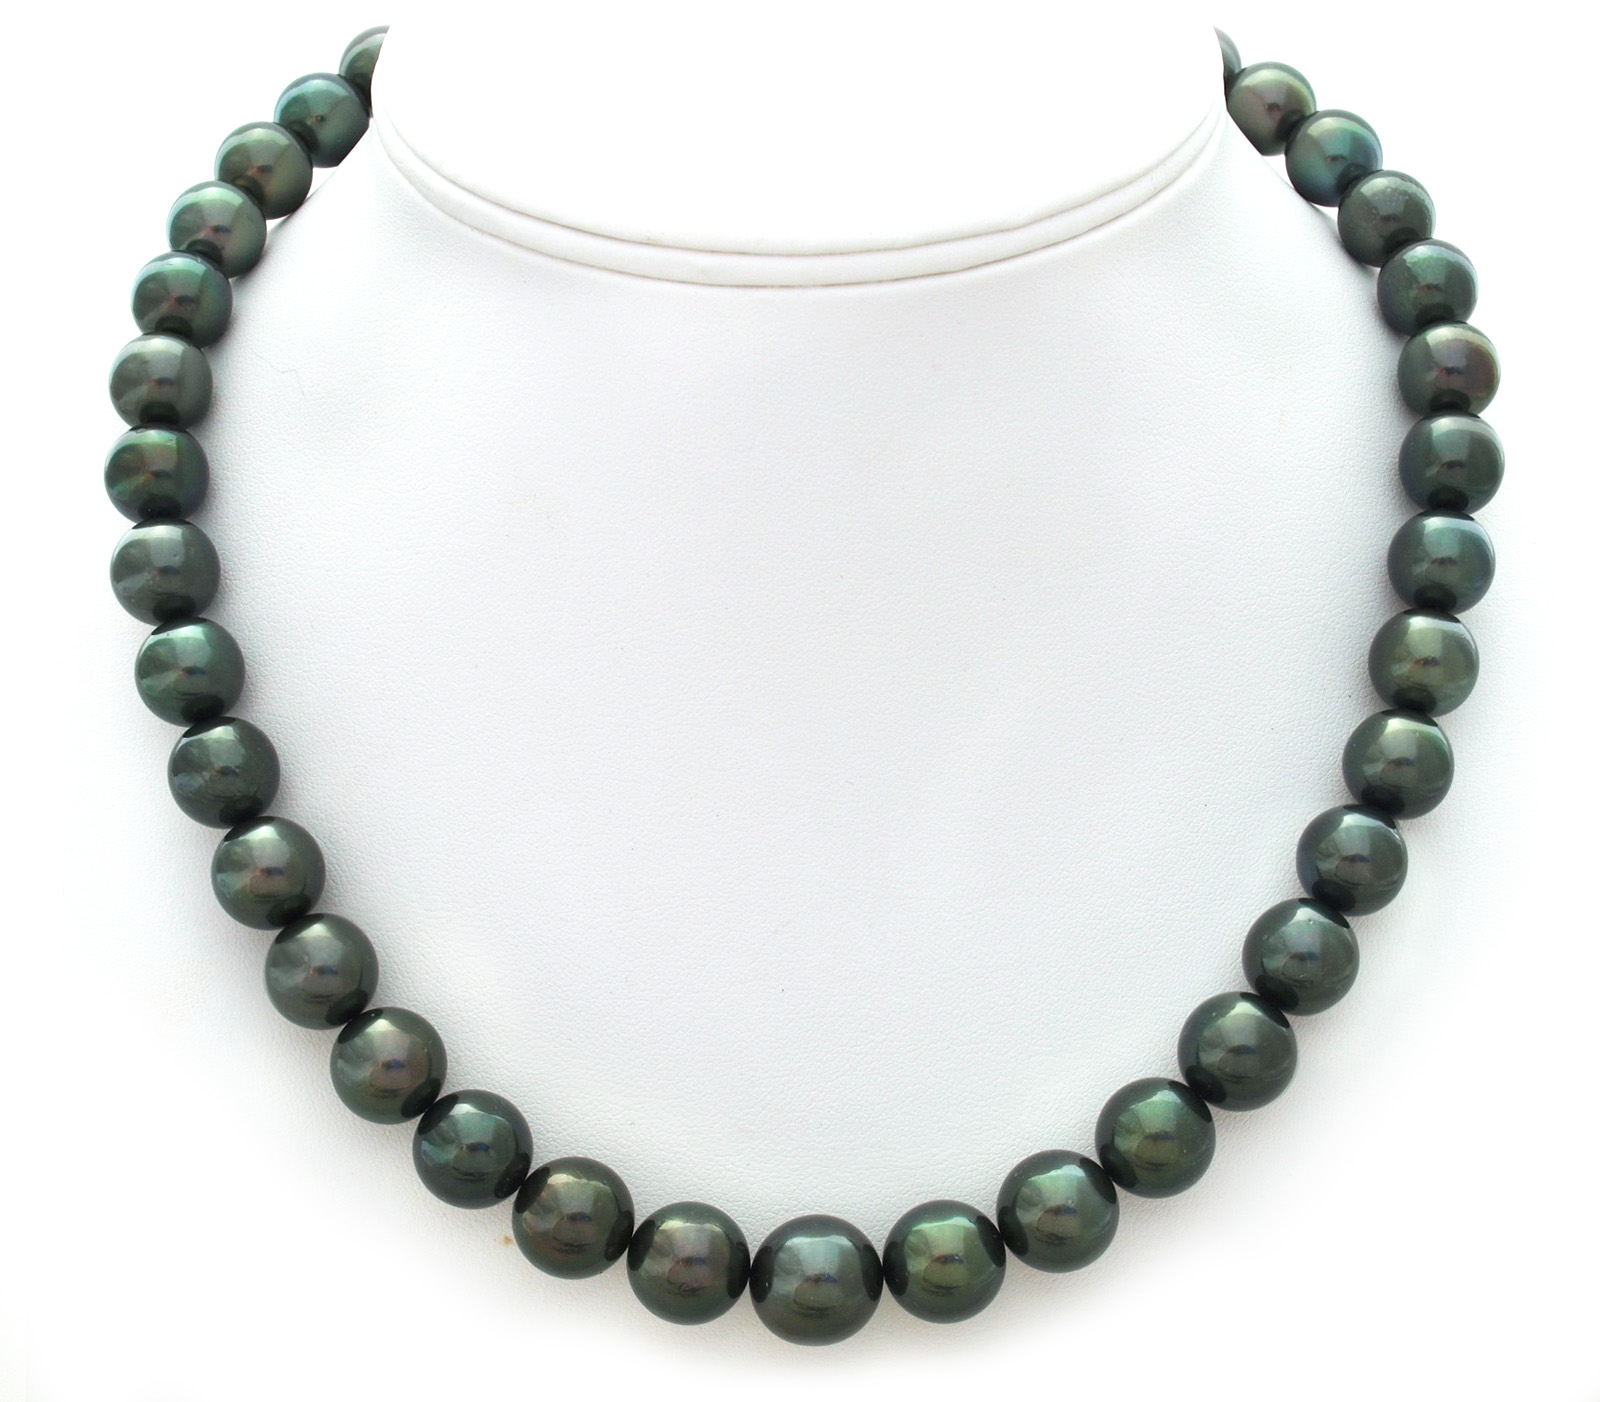 green tahitian pearl necklace with peacock